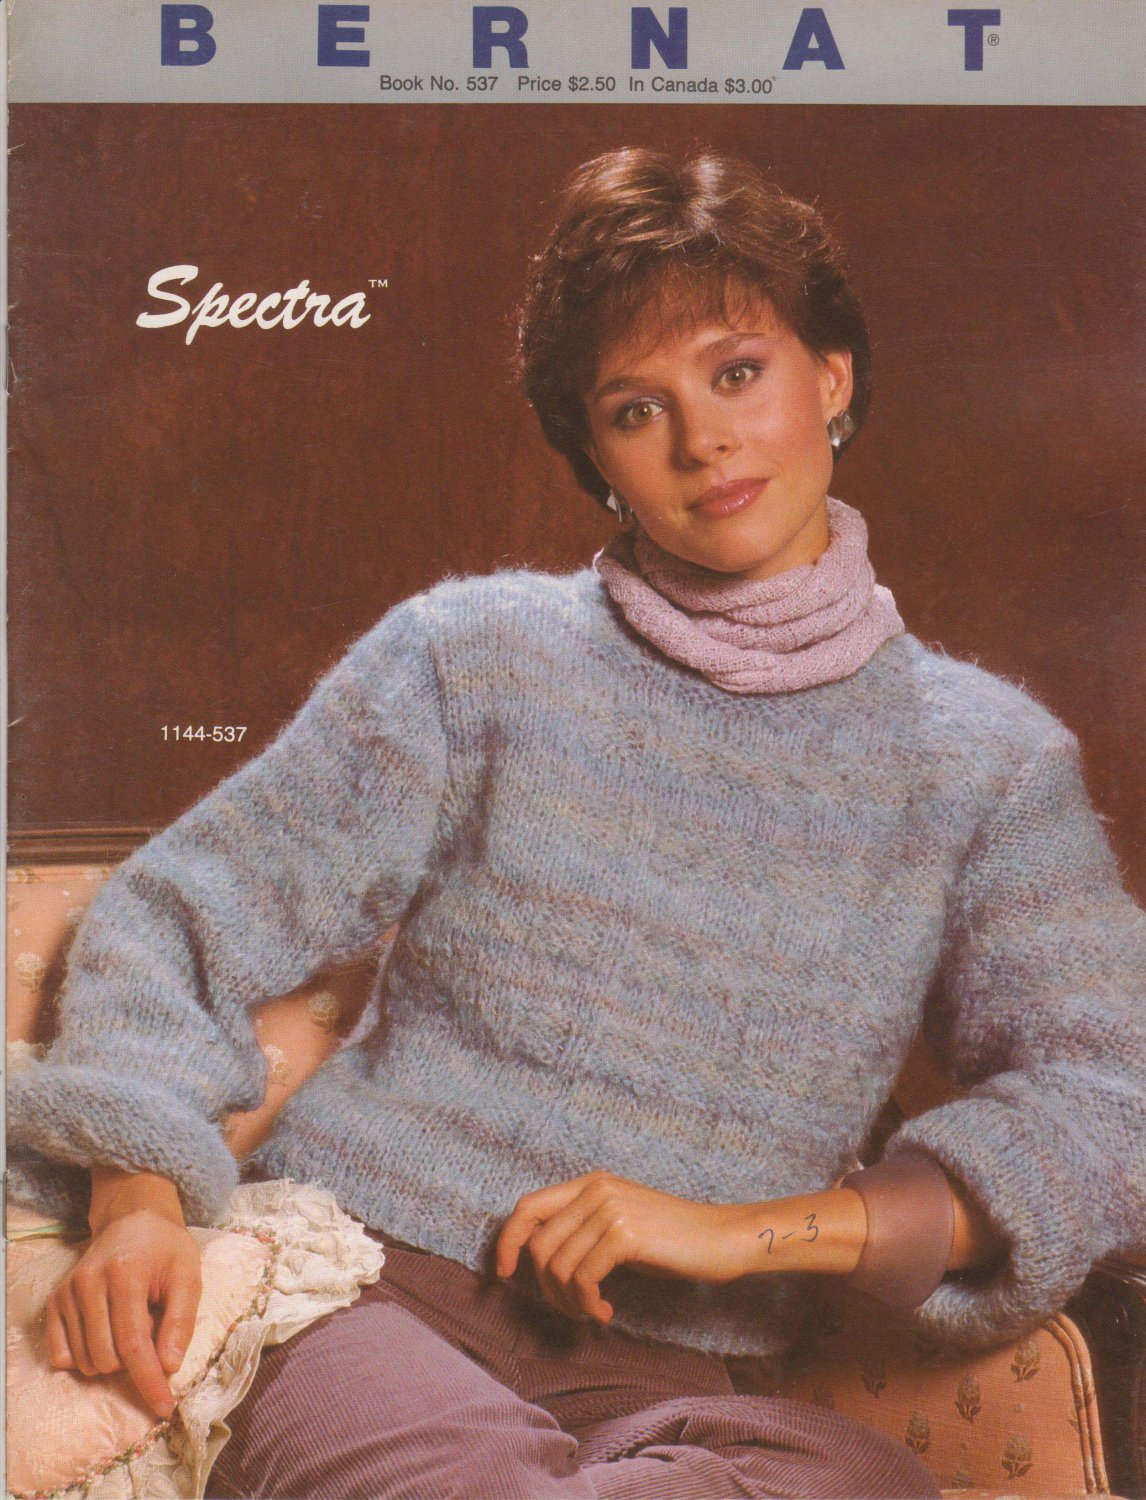 Bernat 1984 Knitting Pattern No. 537 Spectra - knit sweater patterns